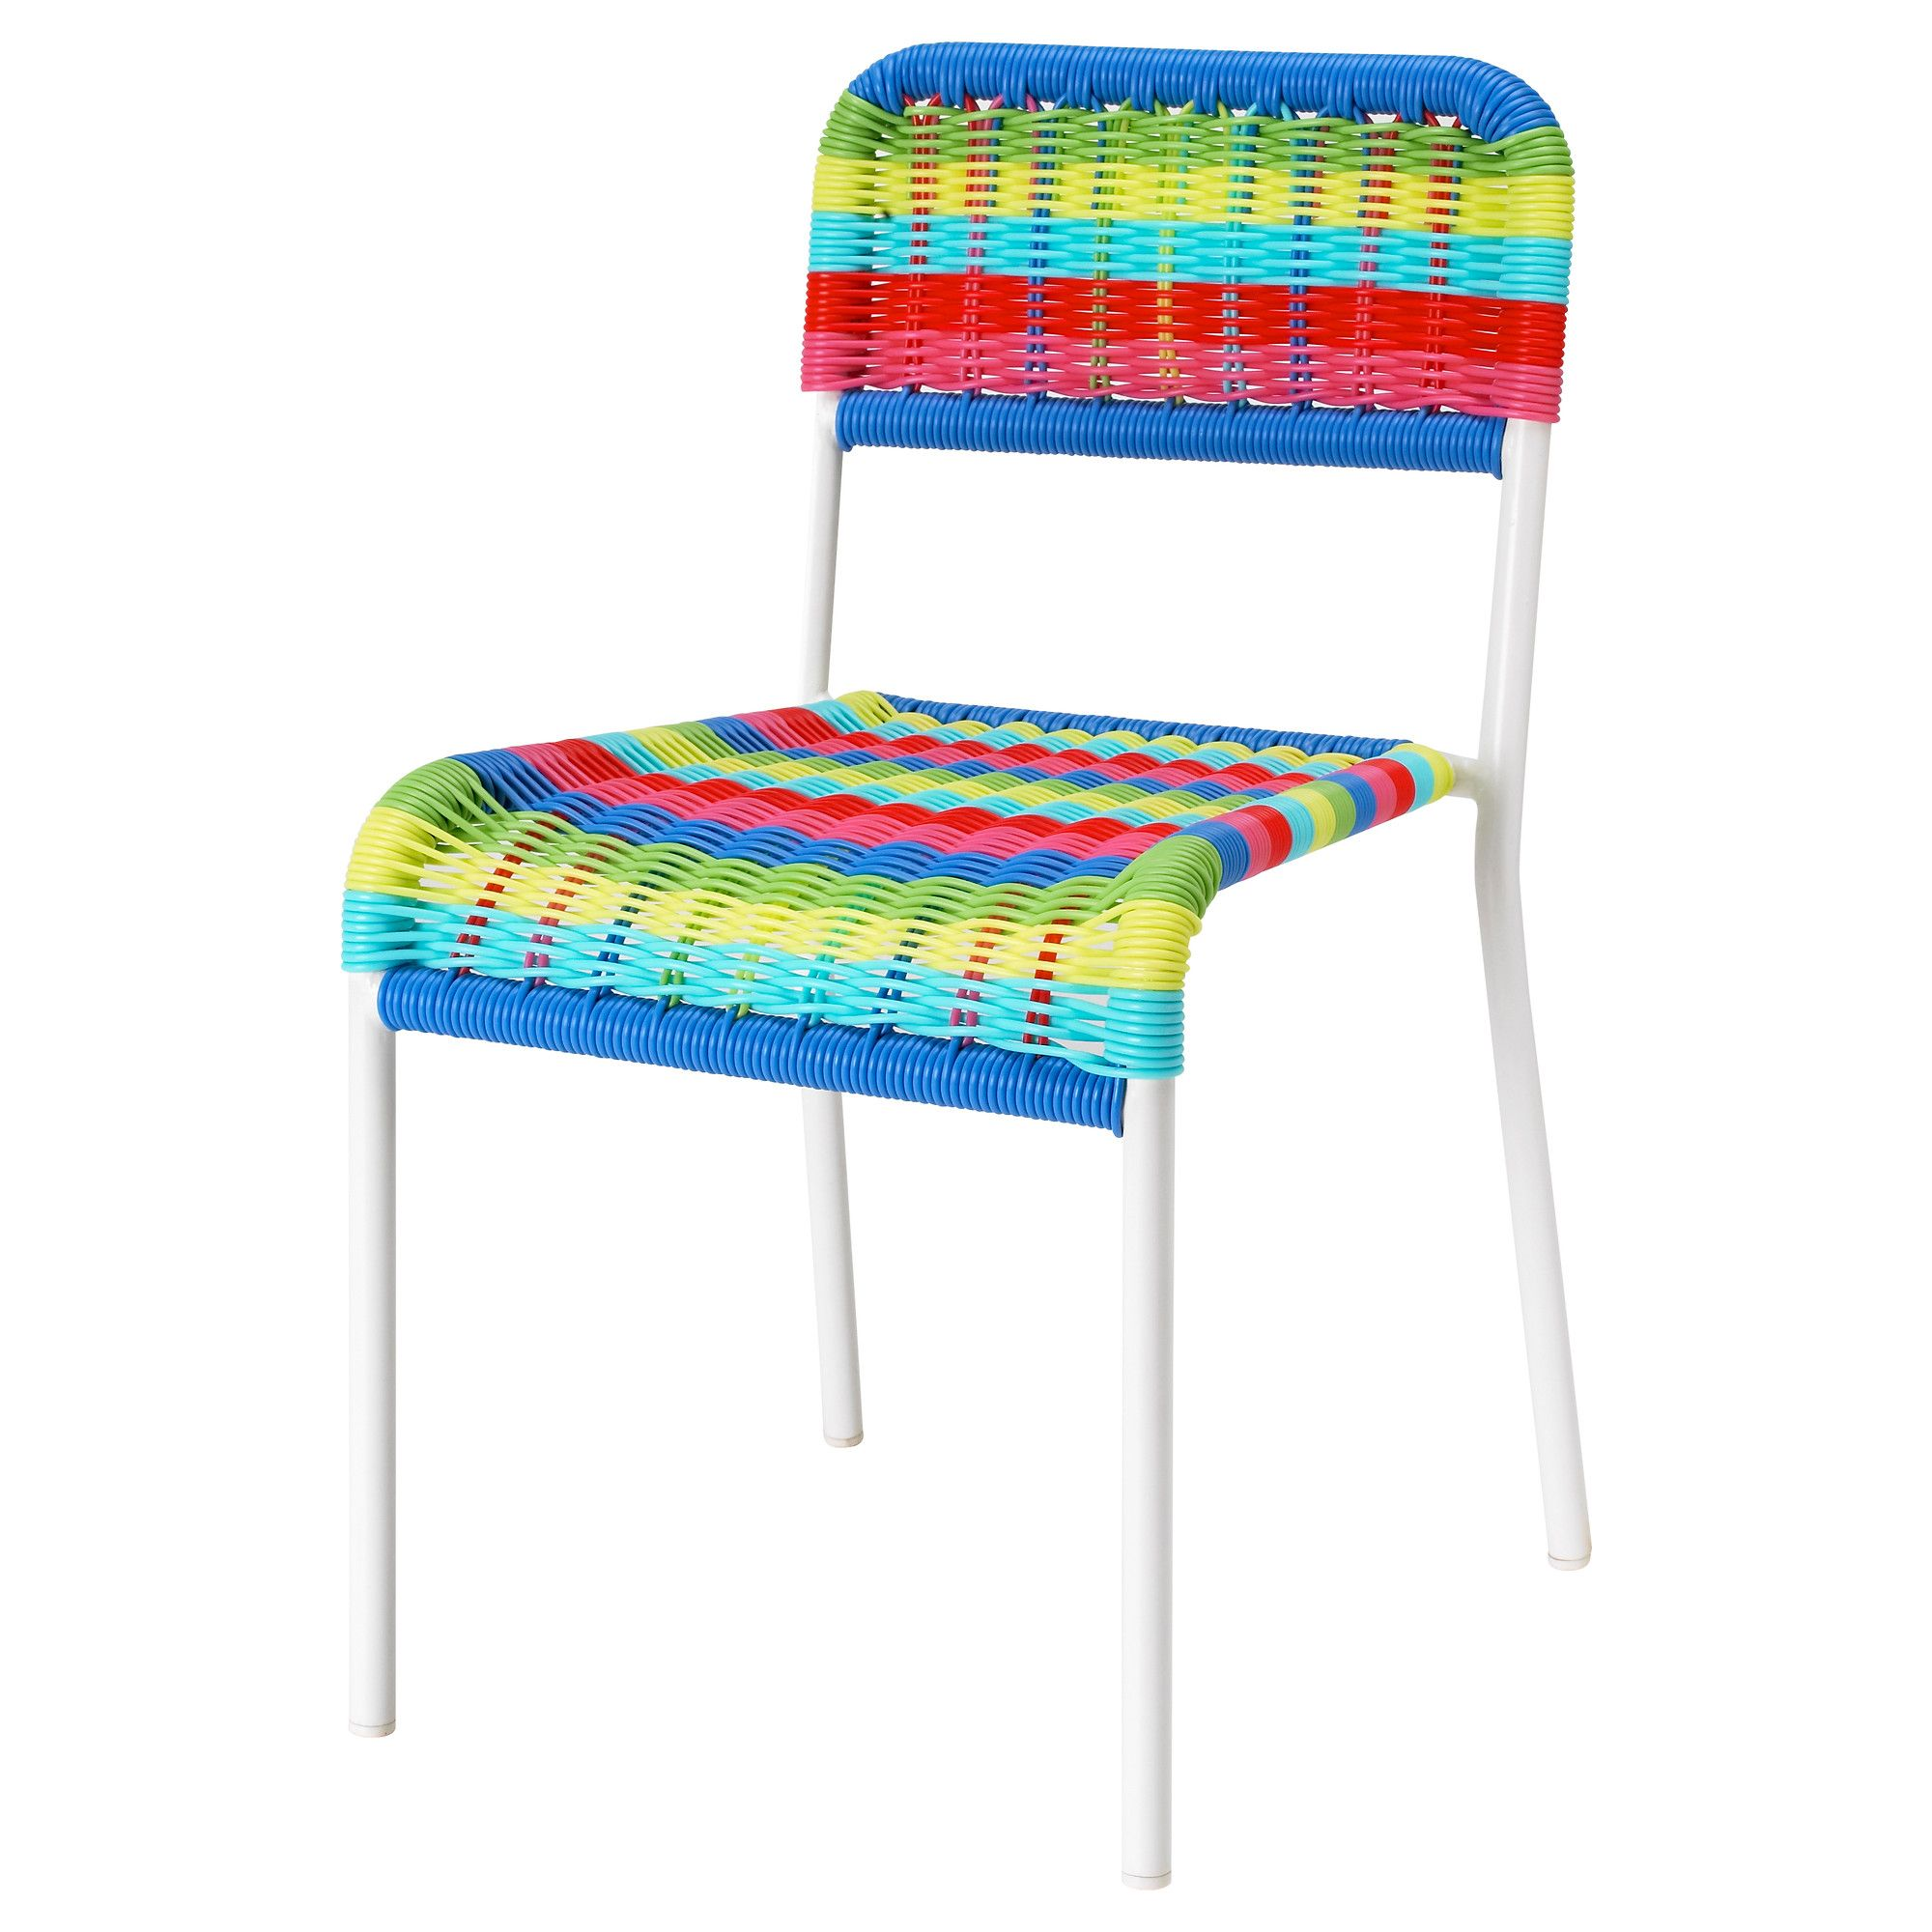 Ikea Us Furniture And Home Furnishings Childrens Chairs Ikea